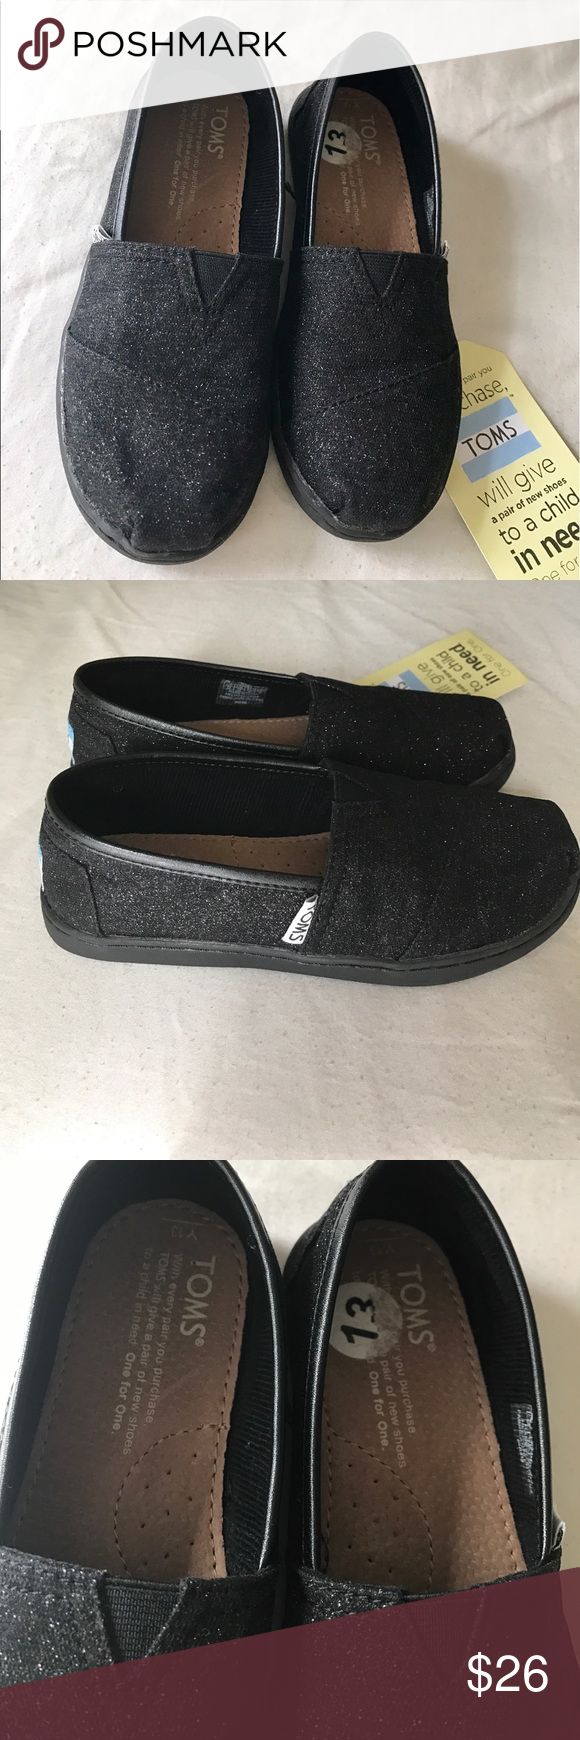 31dc784cf410 Black glitter Toms Little girls size 13 Toms new never used, Toms Shoes  Slippers